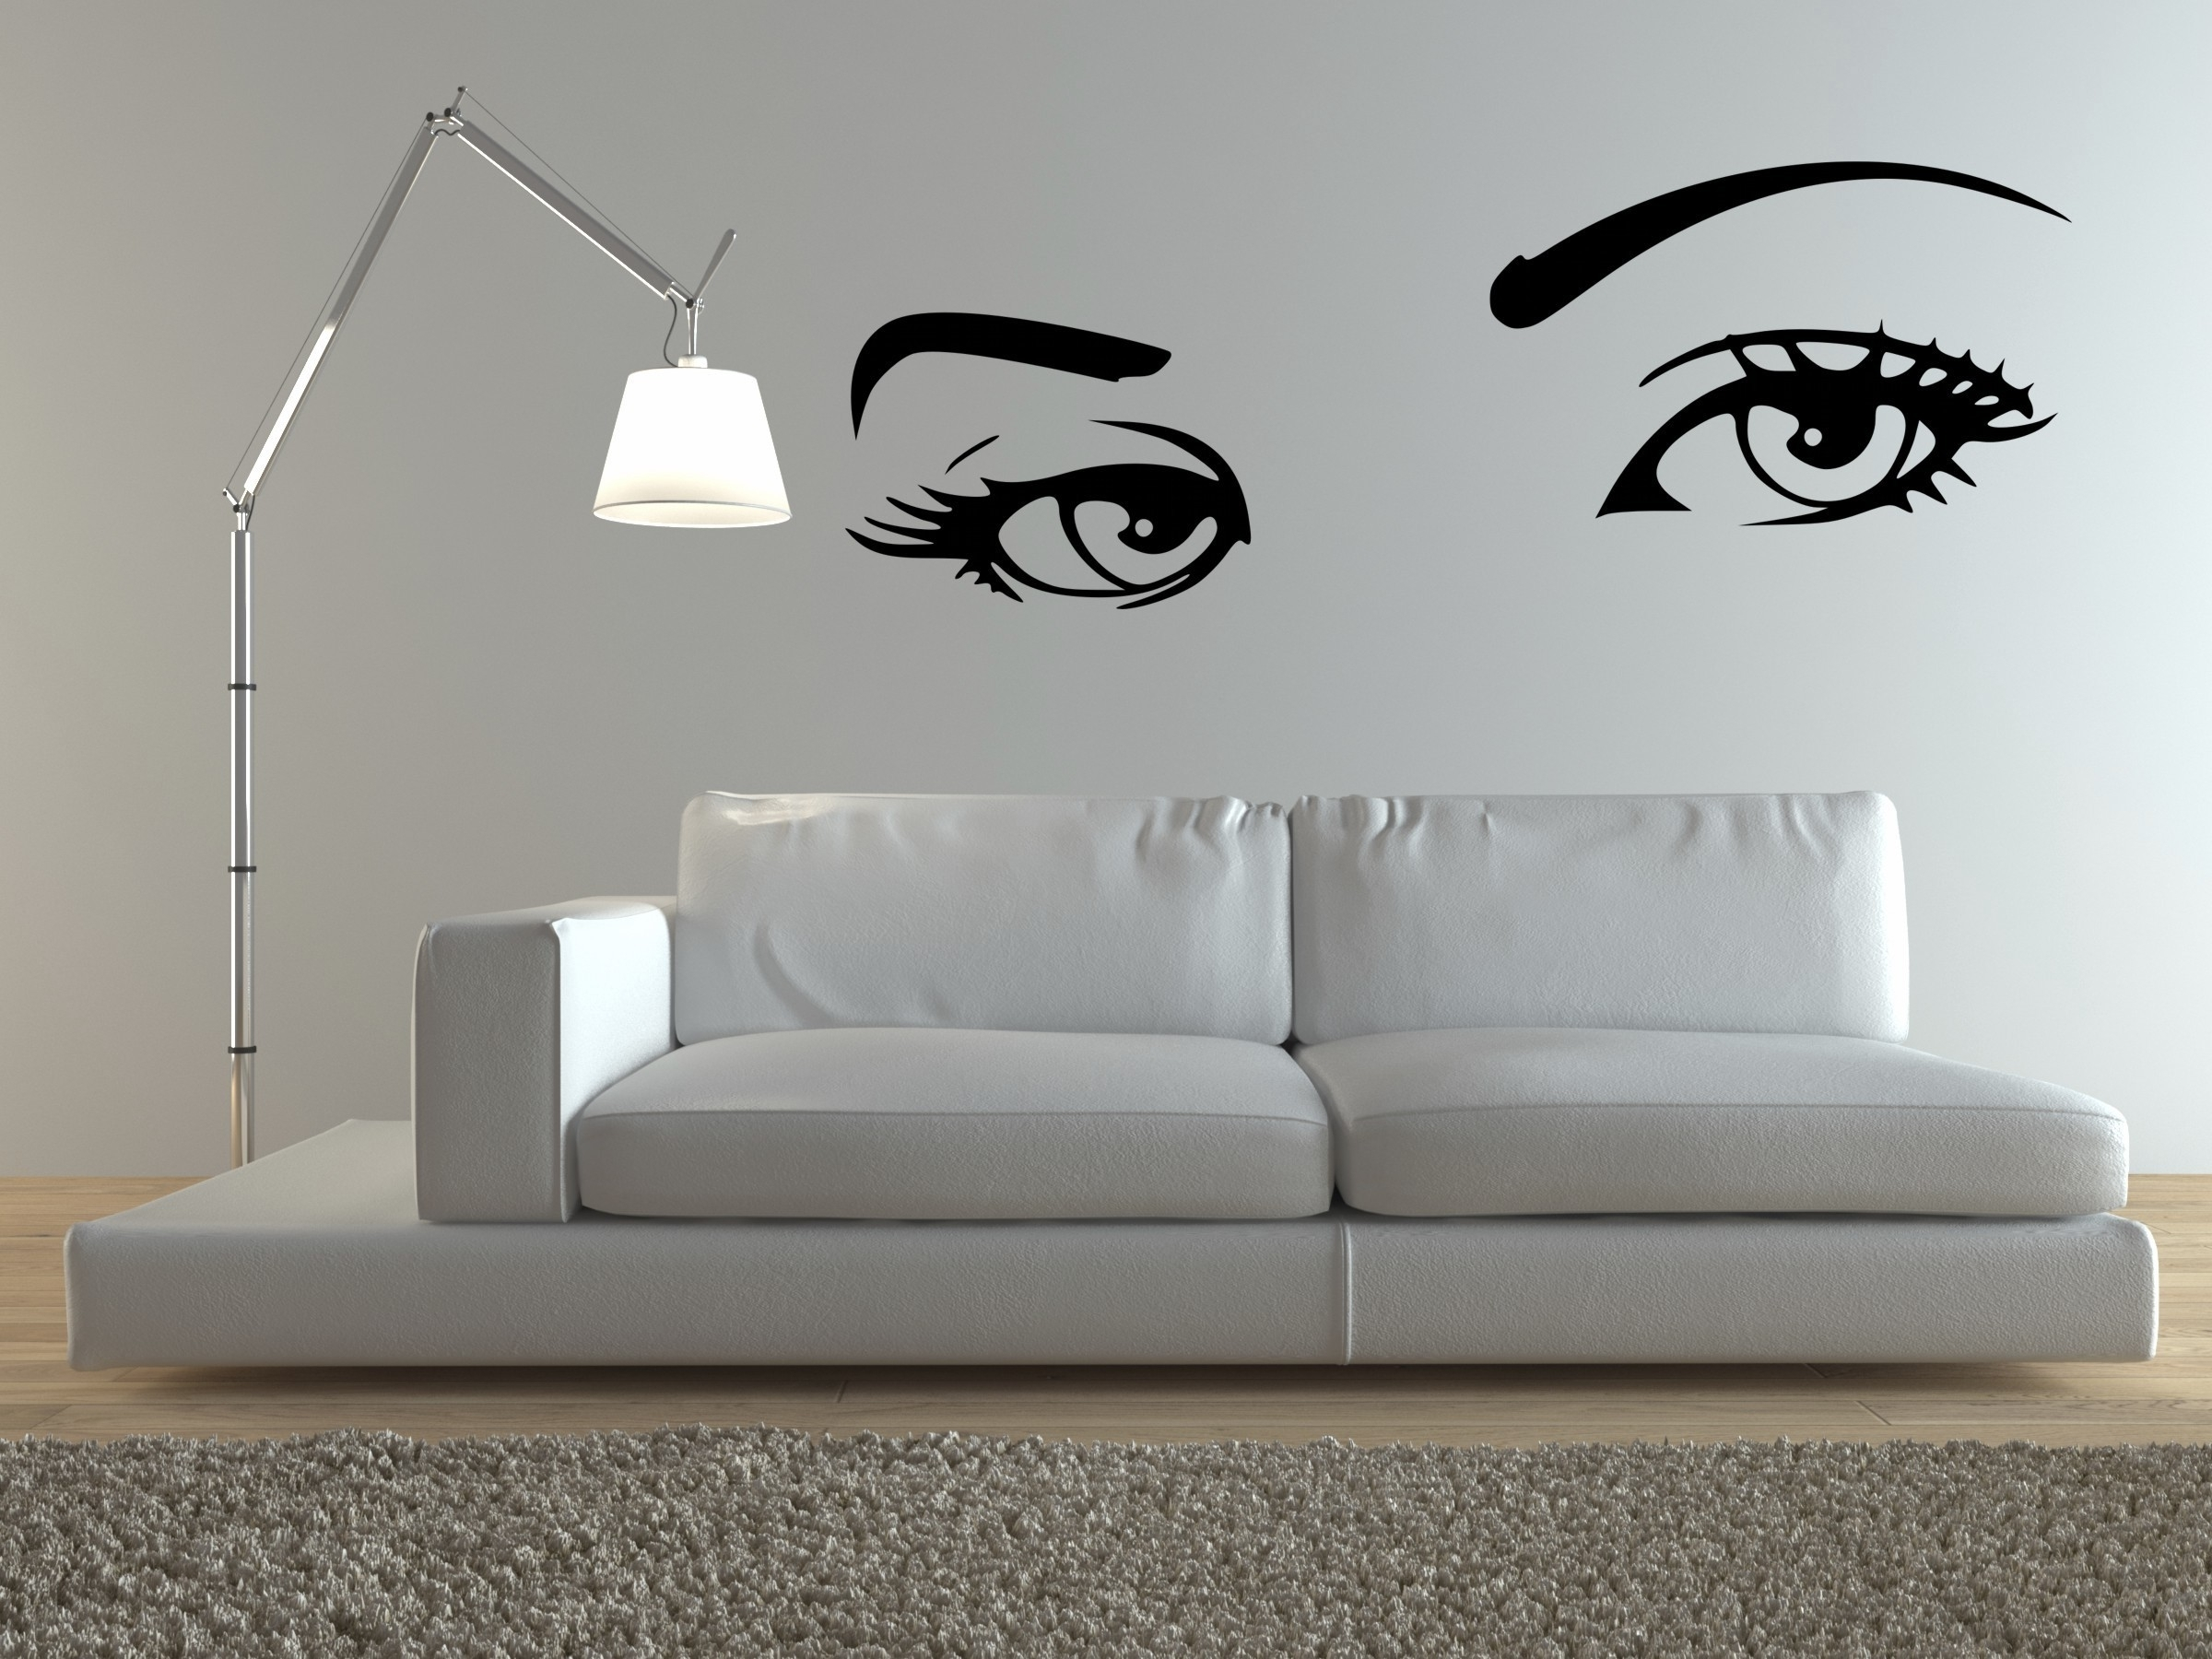 Custom Wall Stickers | Wall Of Photos | Pinterest | Wall Sticker Inside Recent Custom Wall Accents (Gallery 9 of 15)